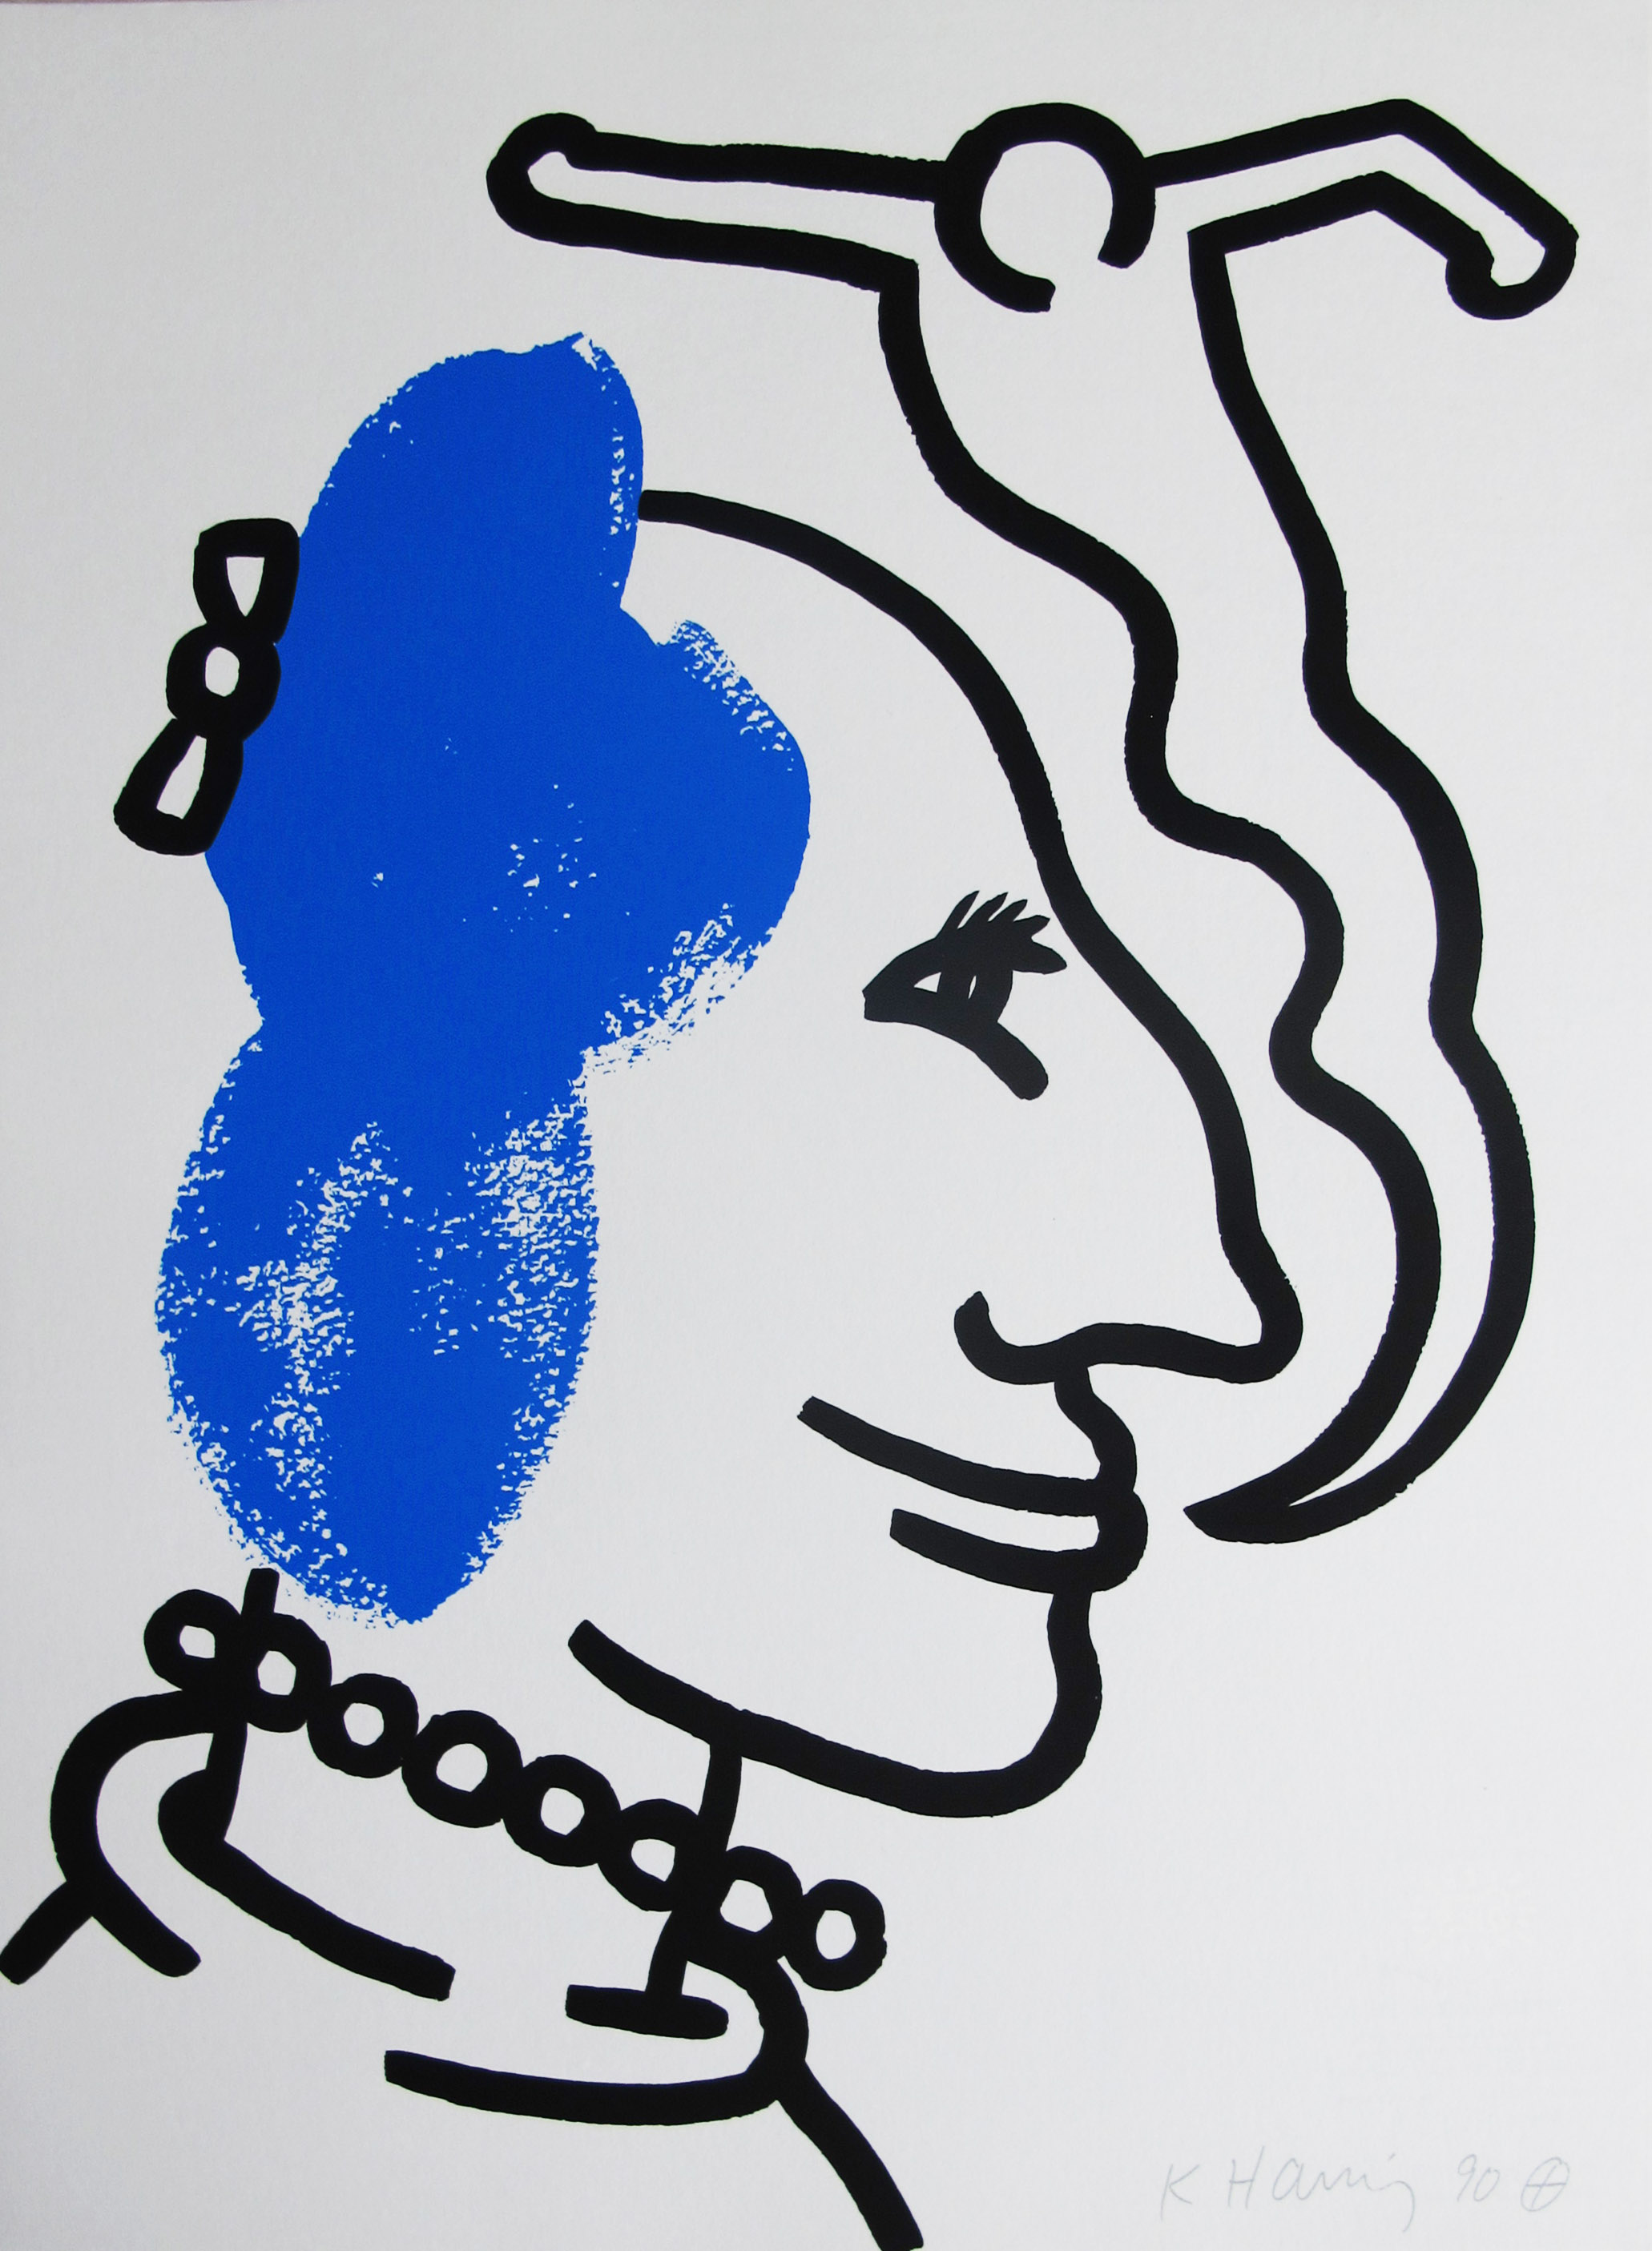 Andy Warhol | The Story of Red and Blue 6 | 1989 | Image of Artists' work.